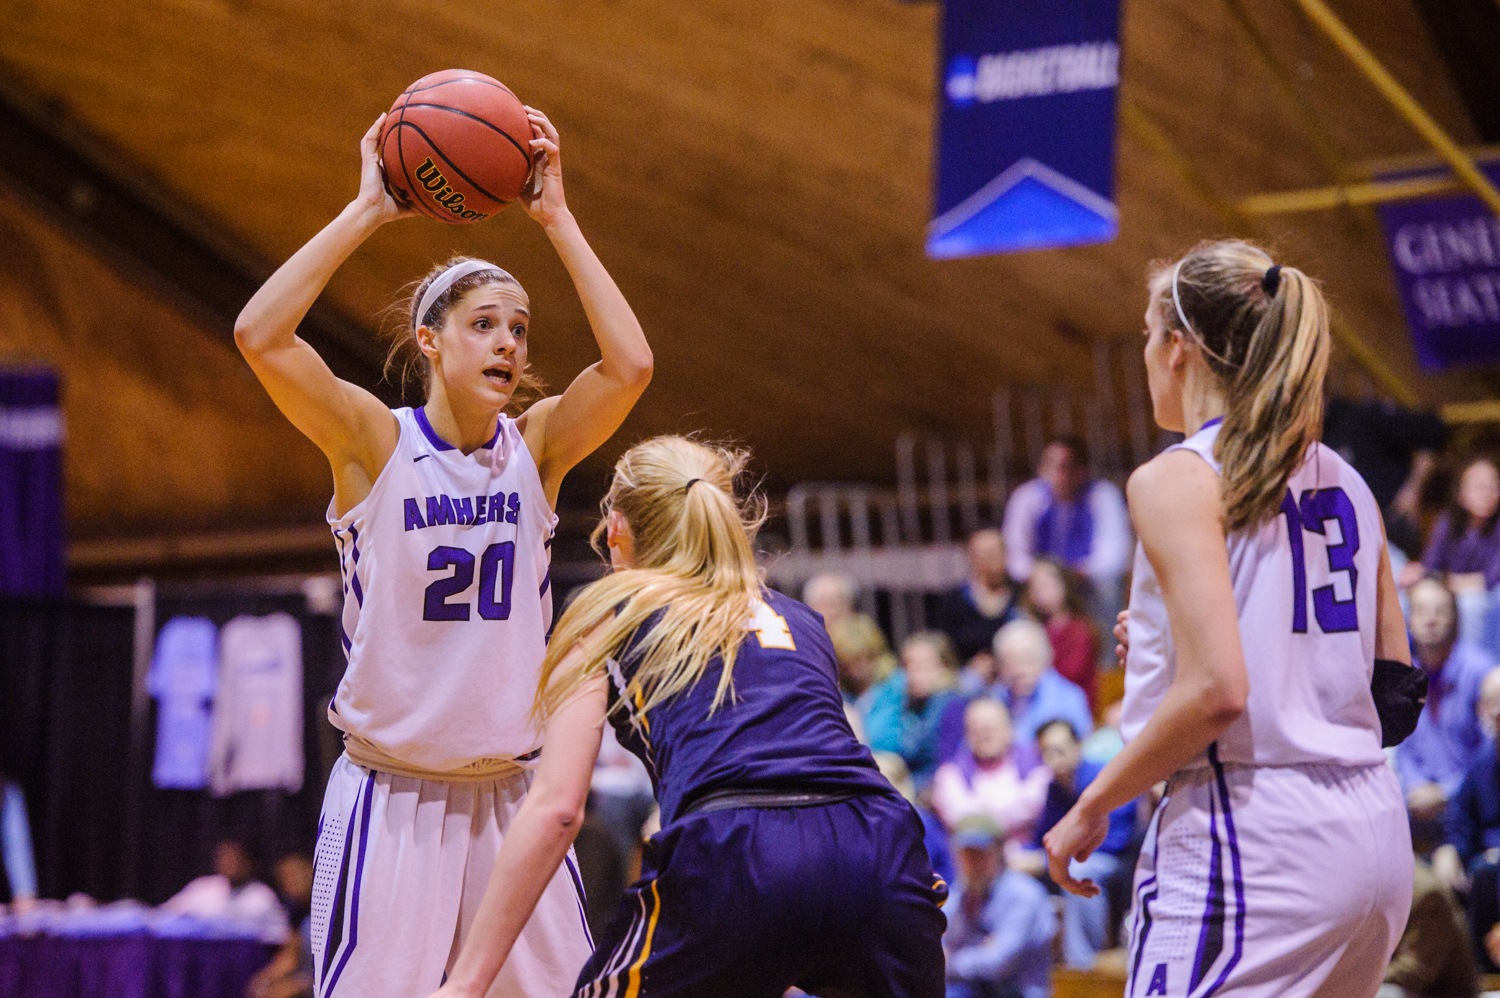 Women's Basketball Dominates | The Amherst Student